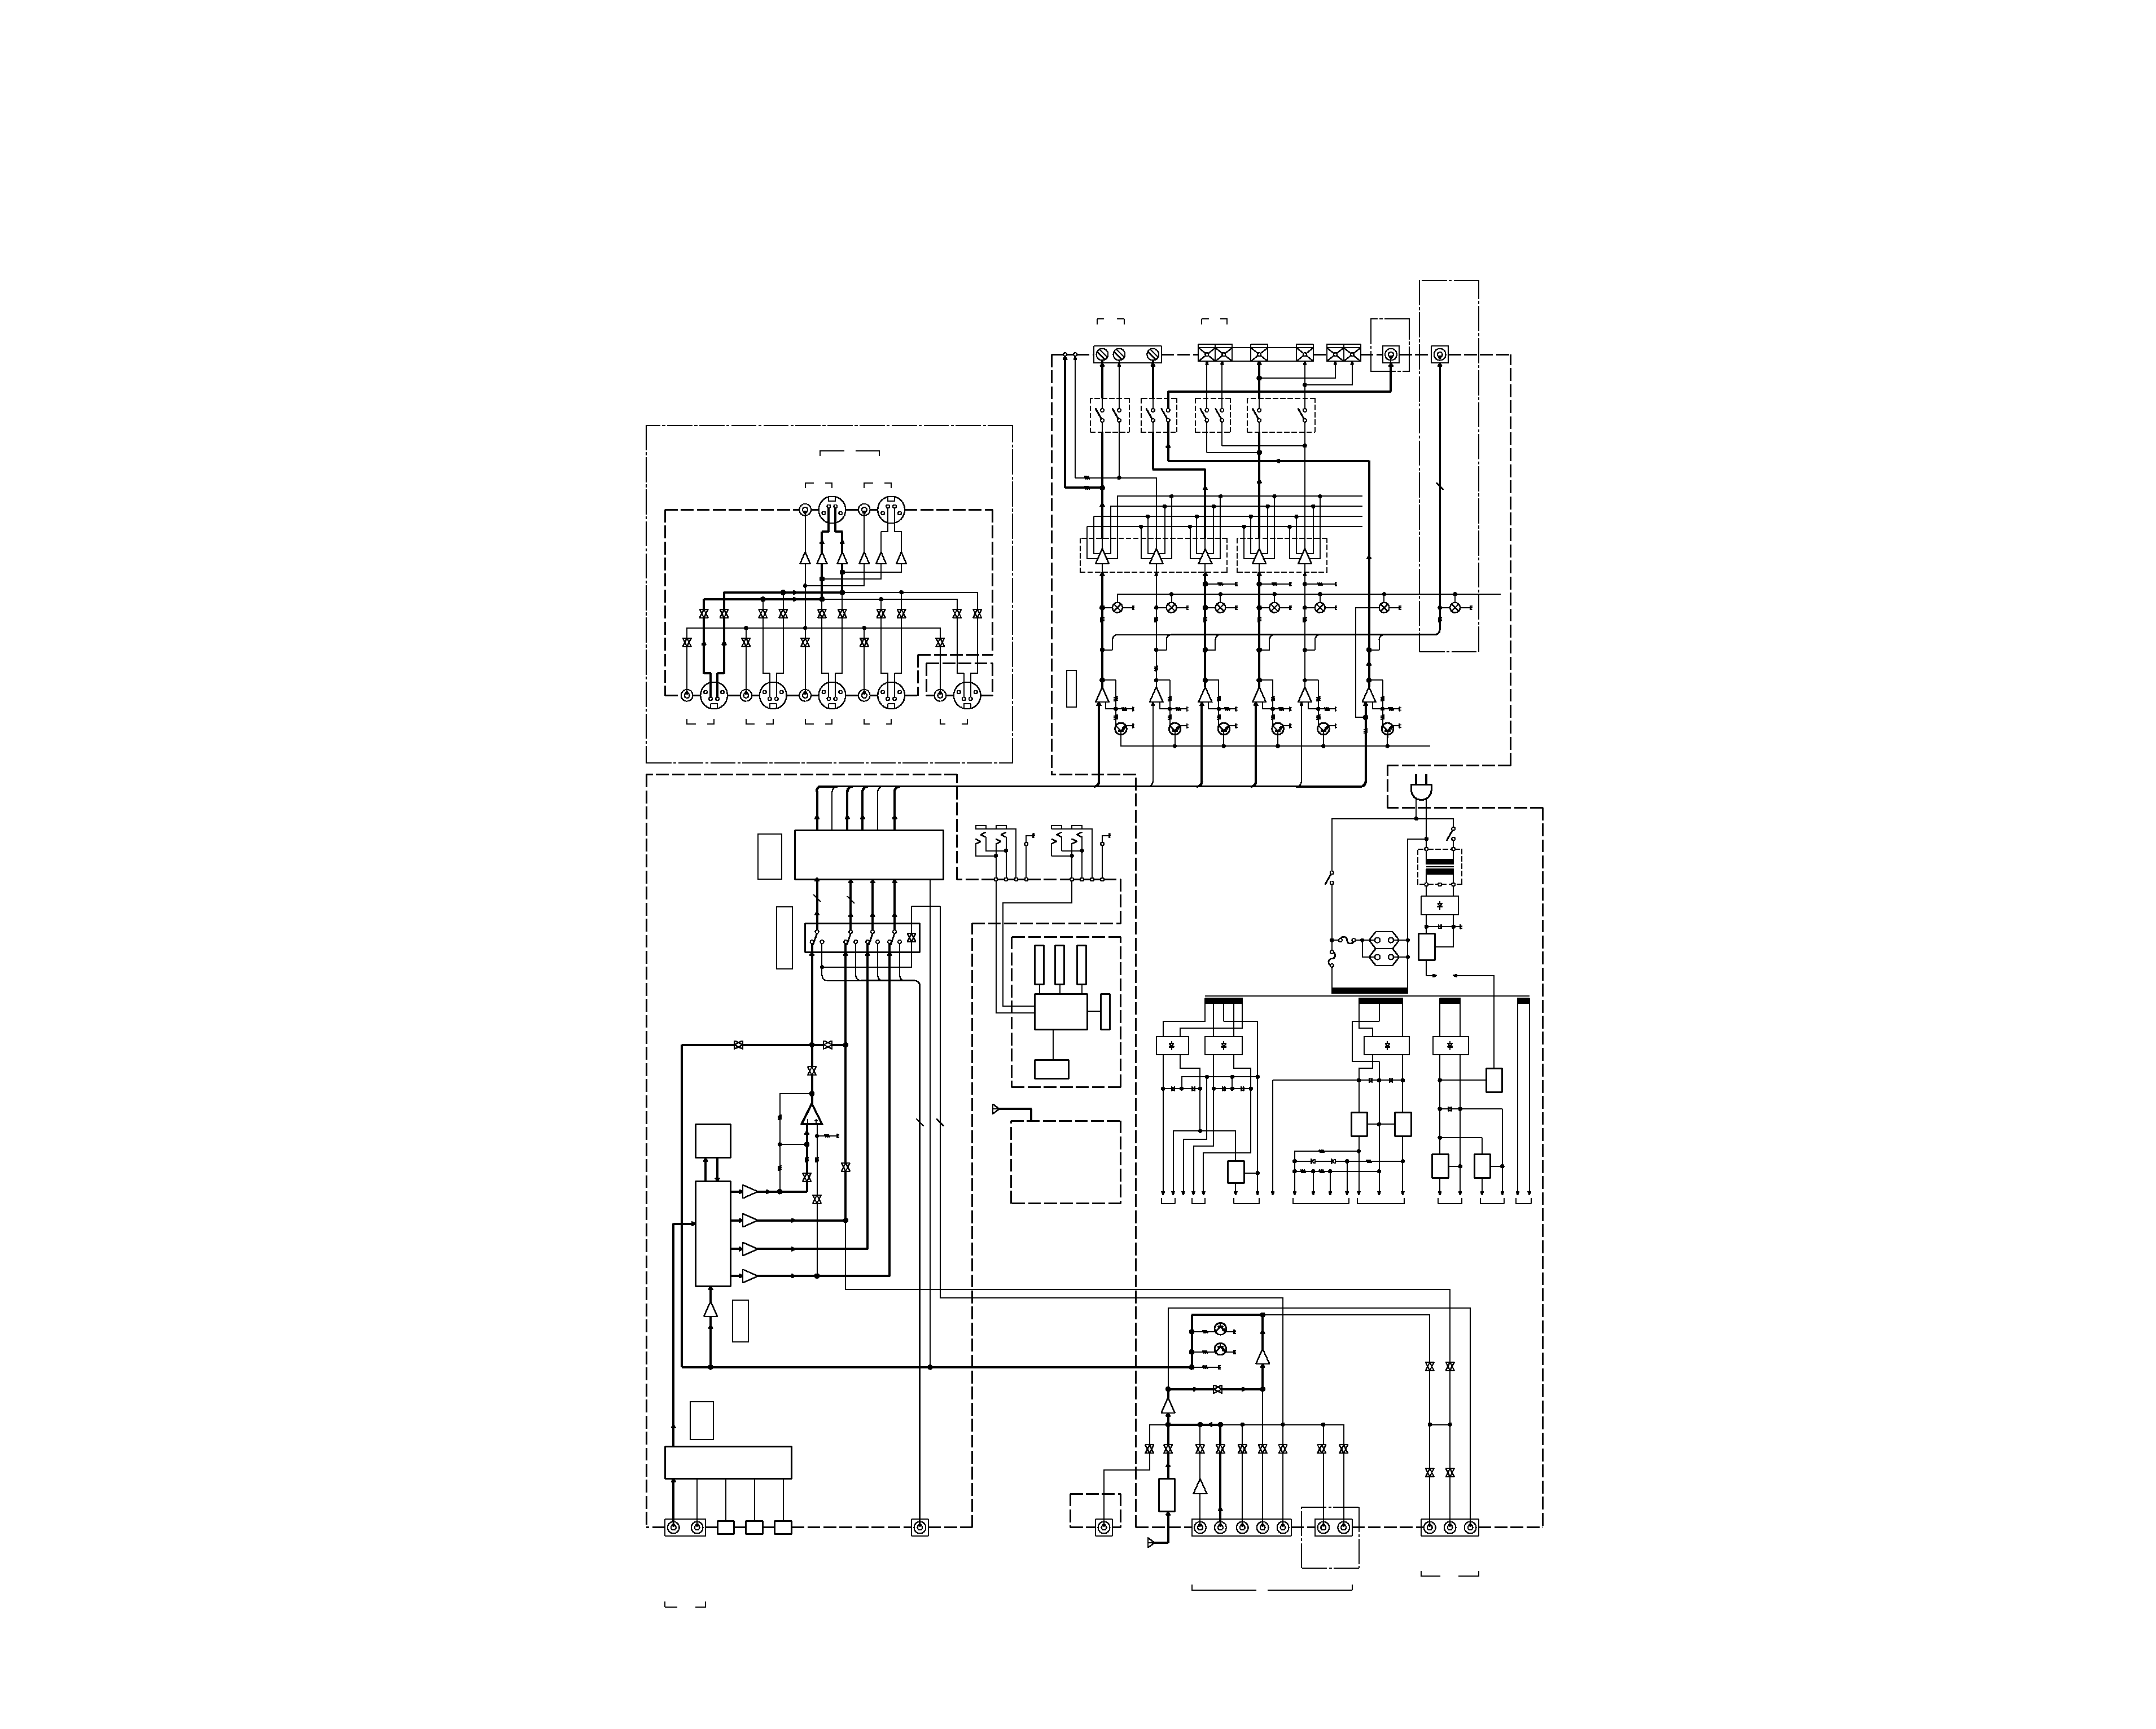 Wiring Diagram For Kenwood Vr 405 : Service manual for kenwood krf v de download